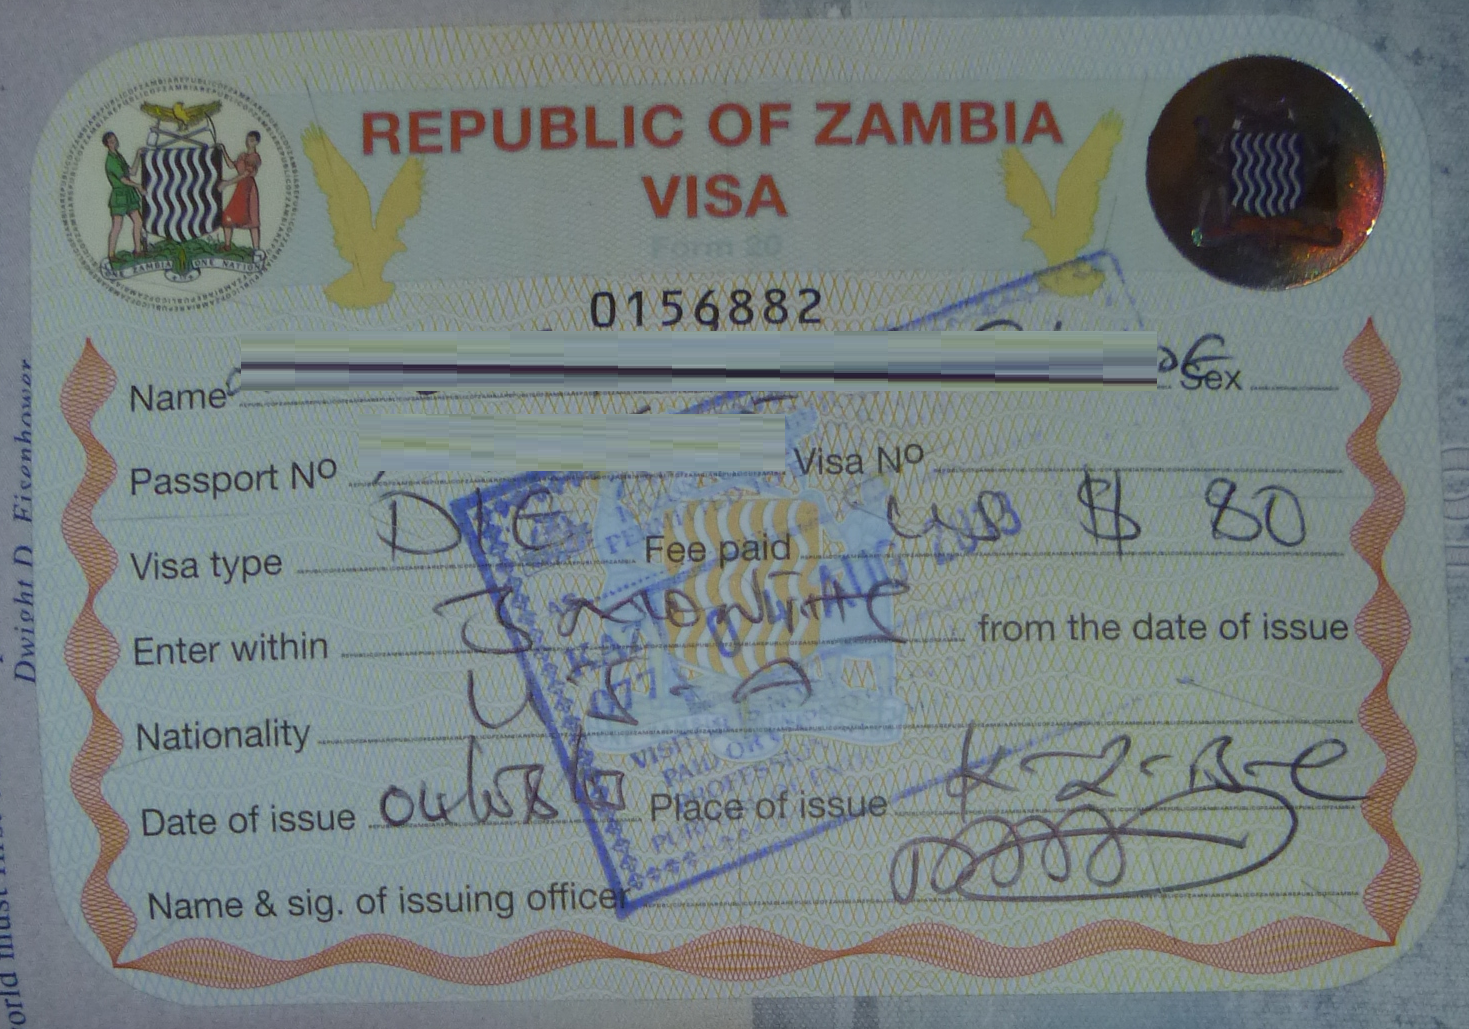 ZAMBIA EMBASSY CLOSED ON 12 MARCH 2019